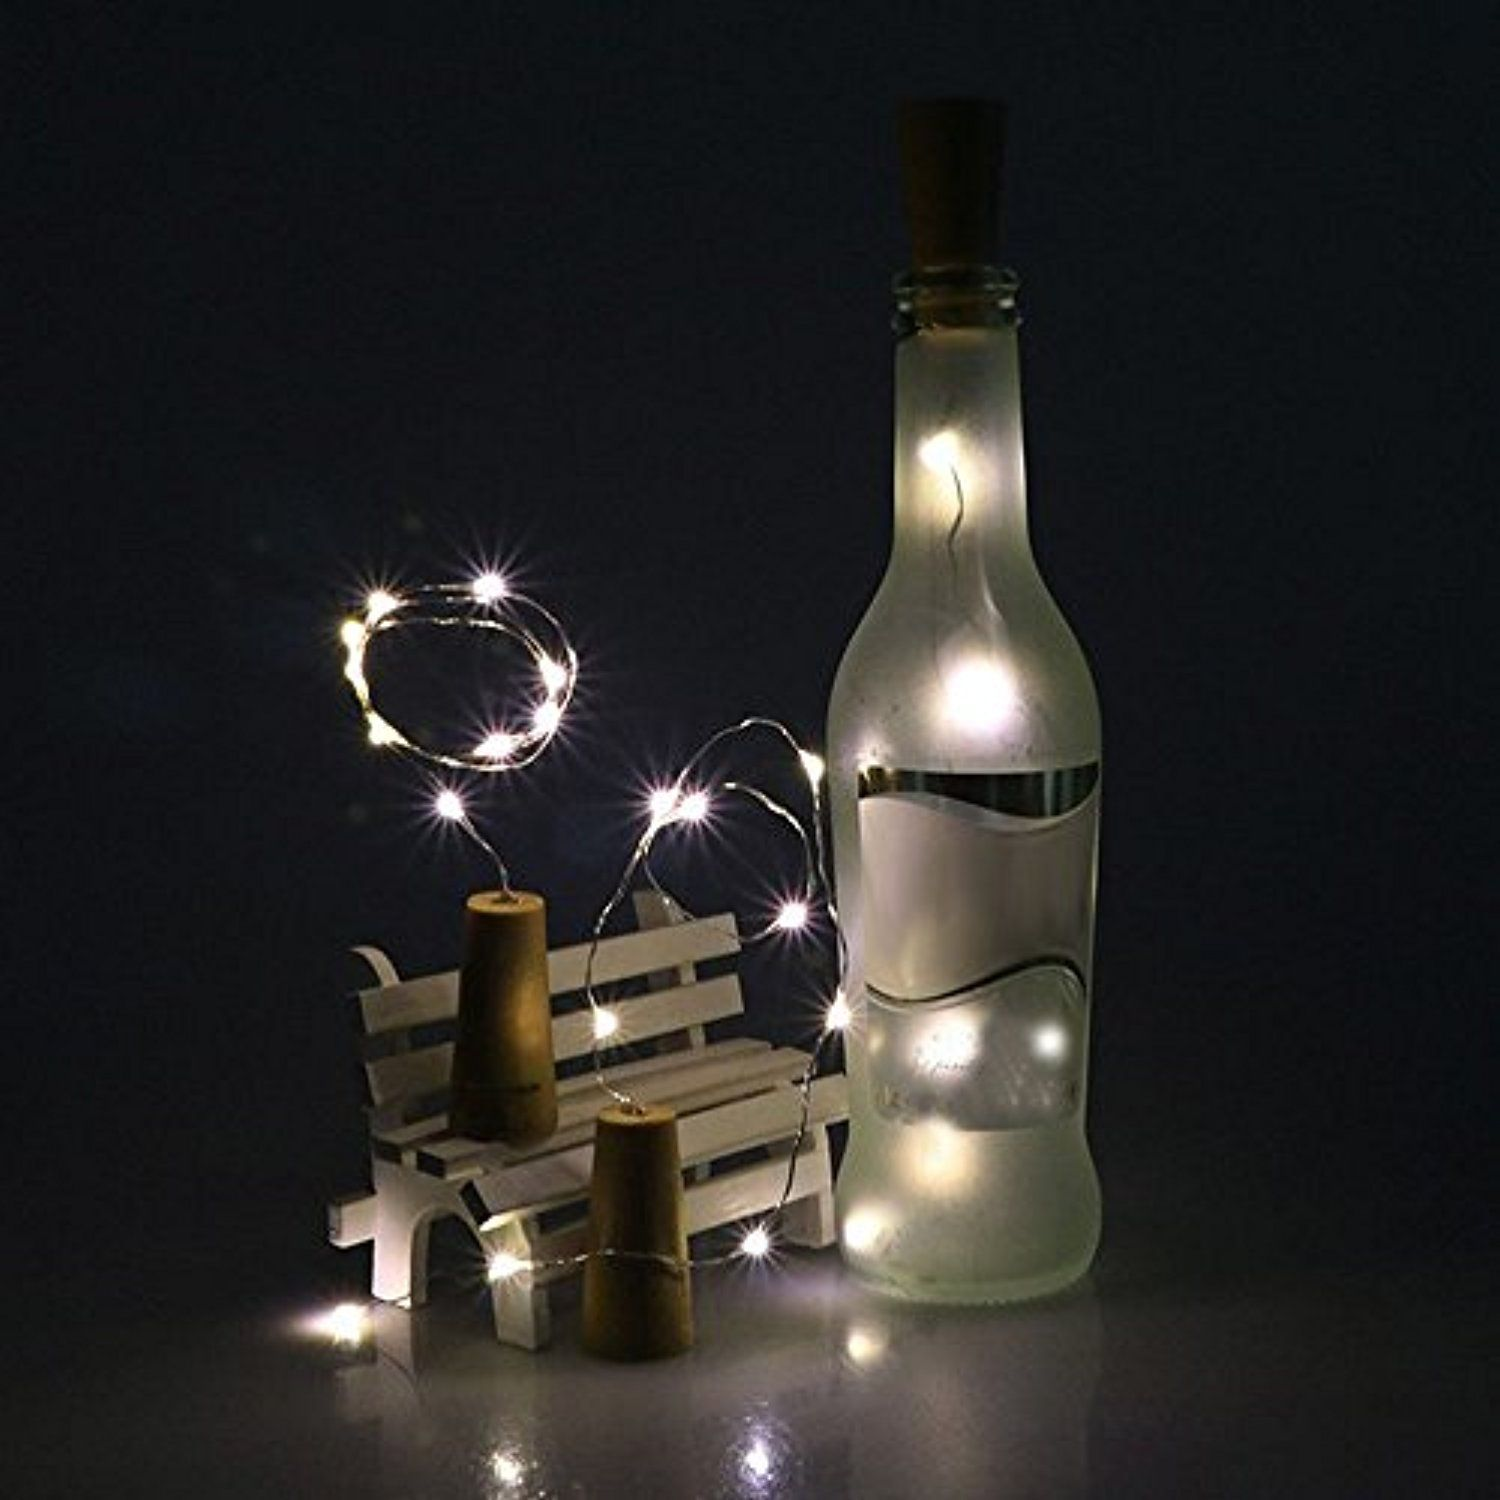 Led Light ,Lavany 4Pcs Solar Wine Bottle Cork Shaped String